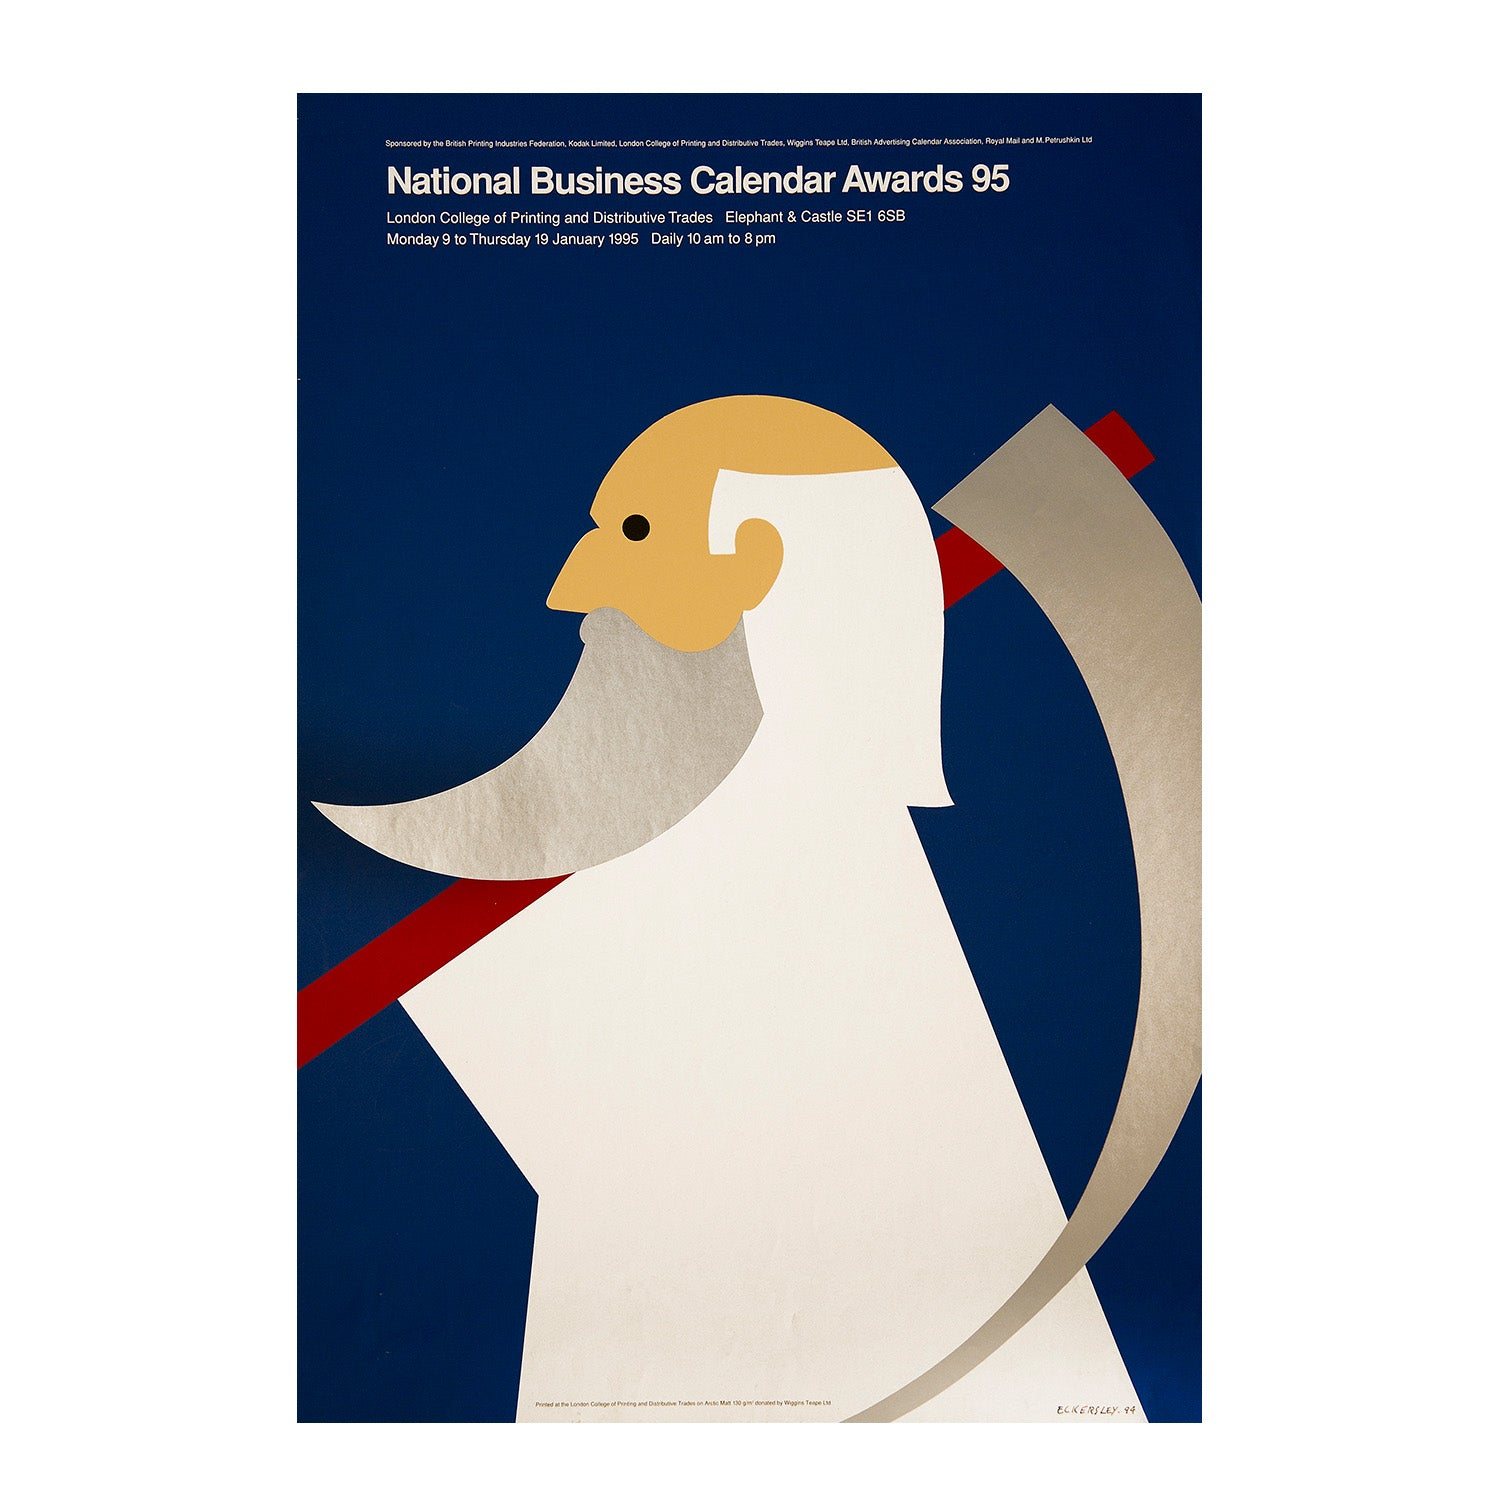 National Business Calendar Awards 95